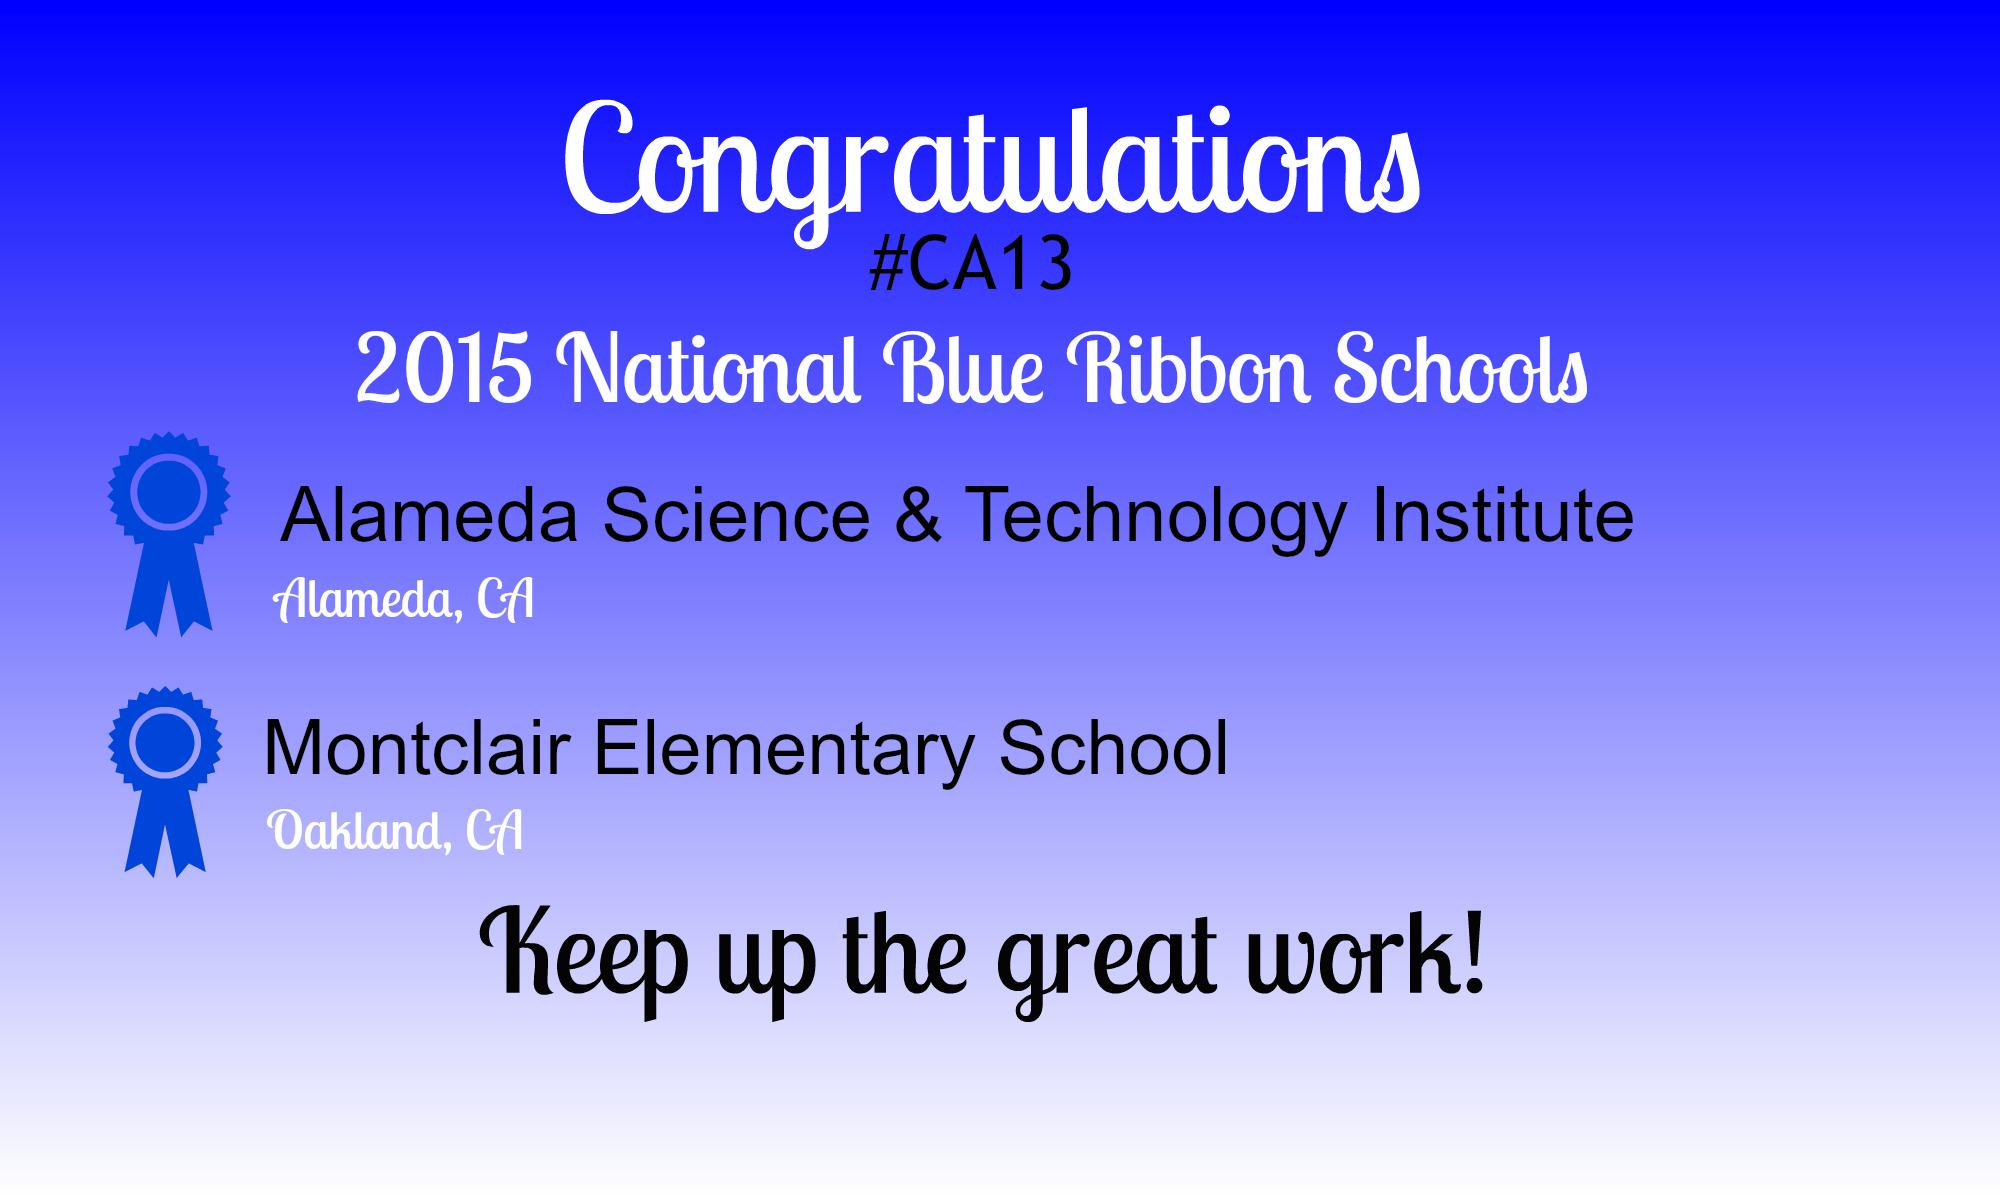 2 #EastBay schools, Montclair elem & alameda science & tech, selected as Ntl Blue Ribbons Schools!  #ca13proud http://t.co/RozFKDxAc3